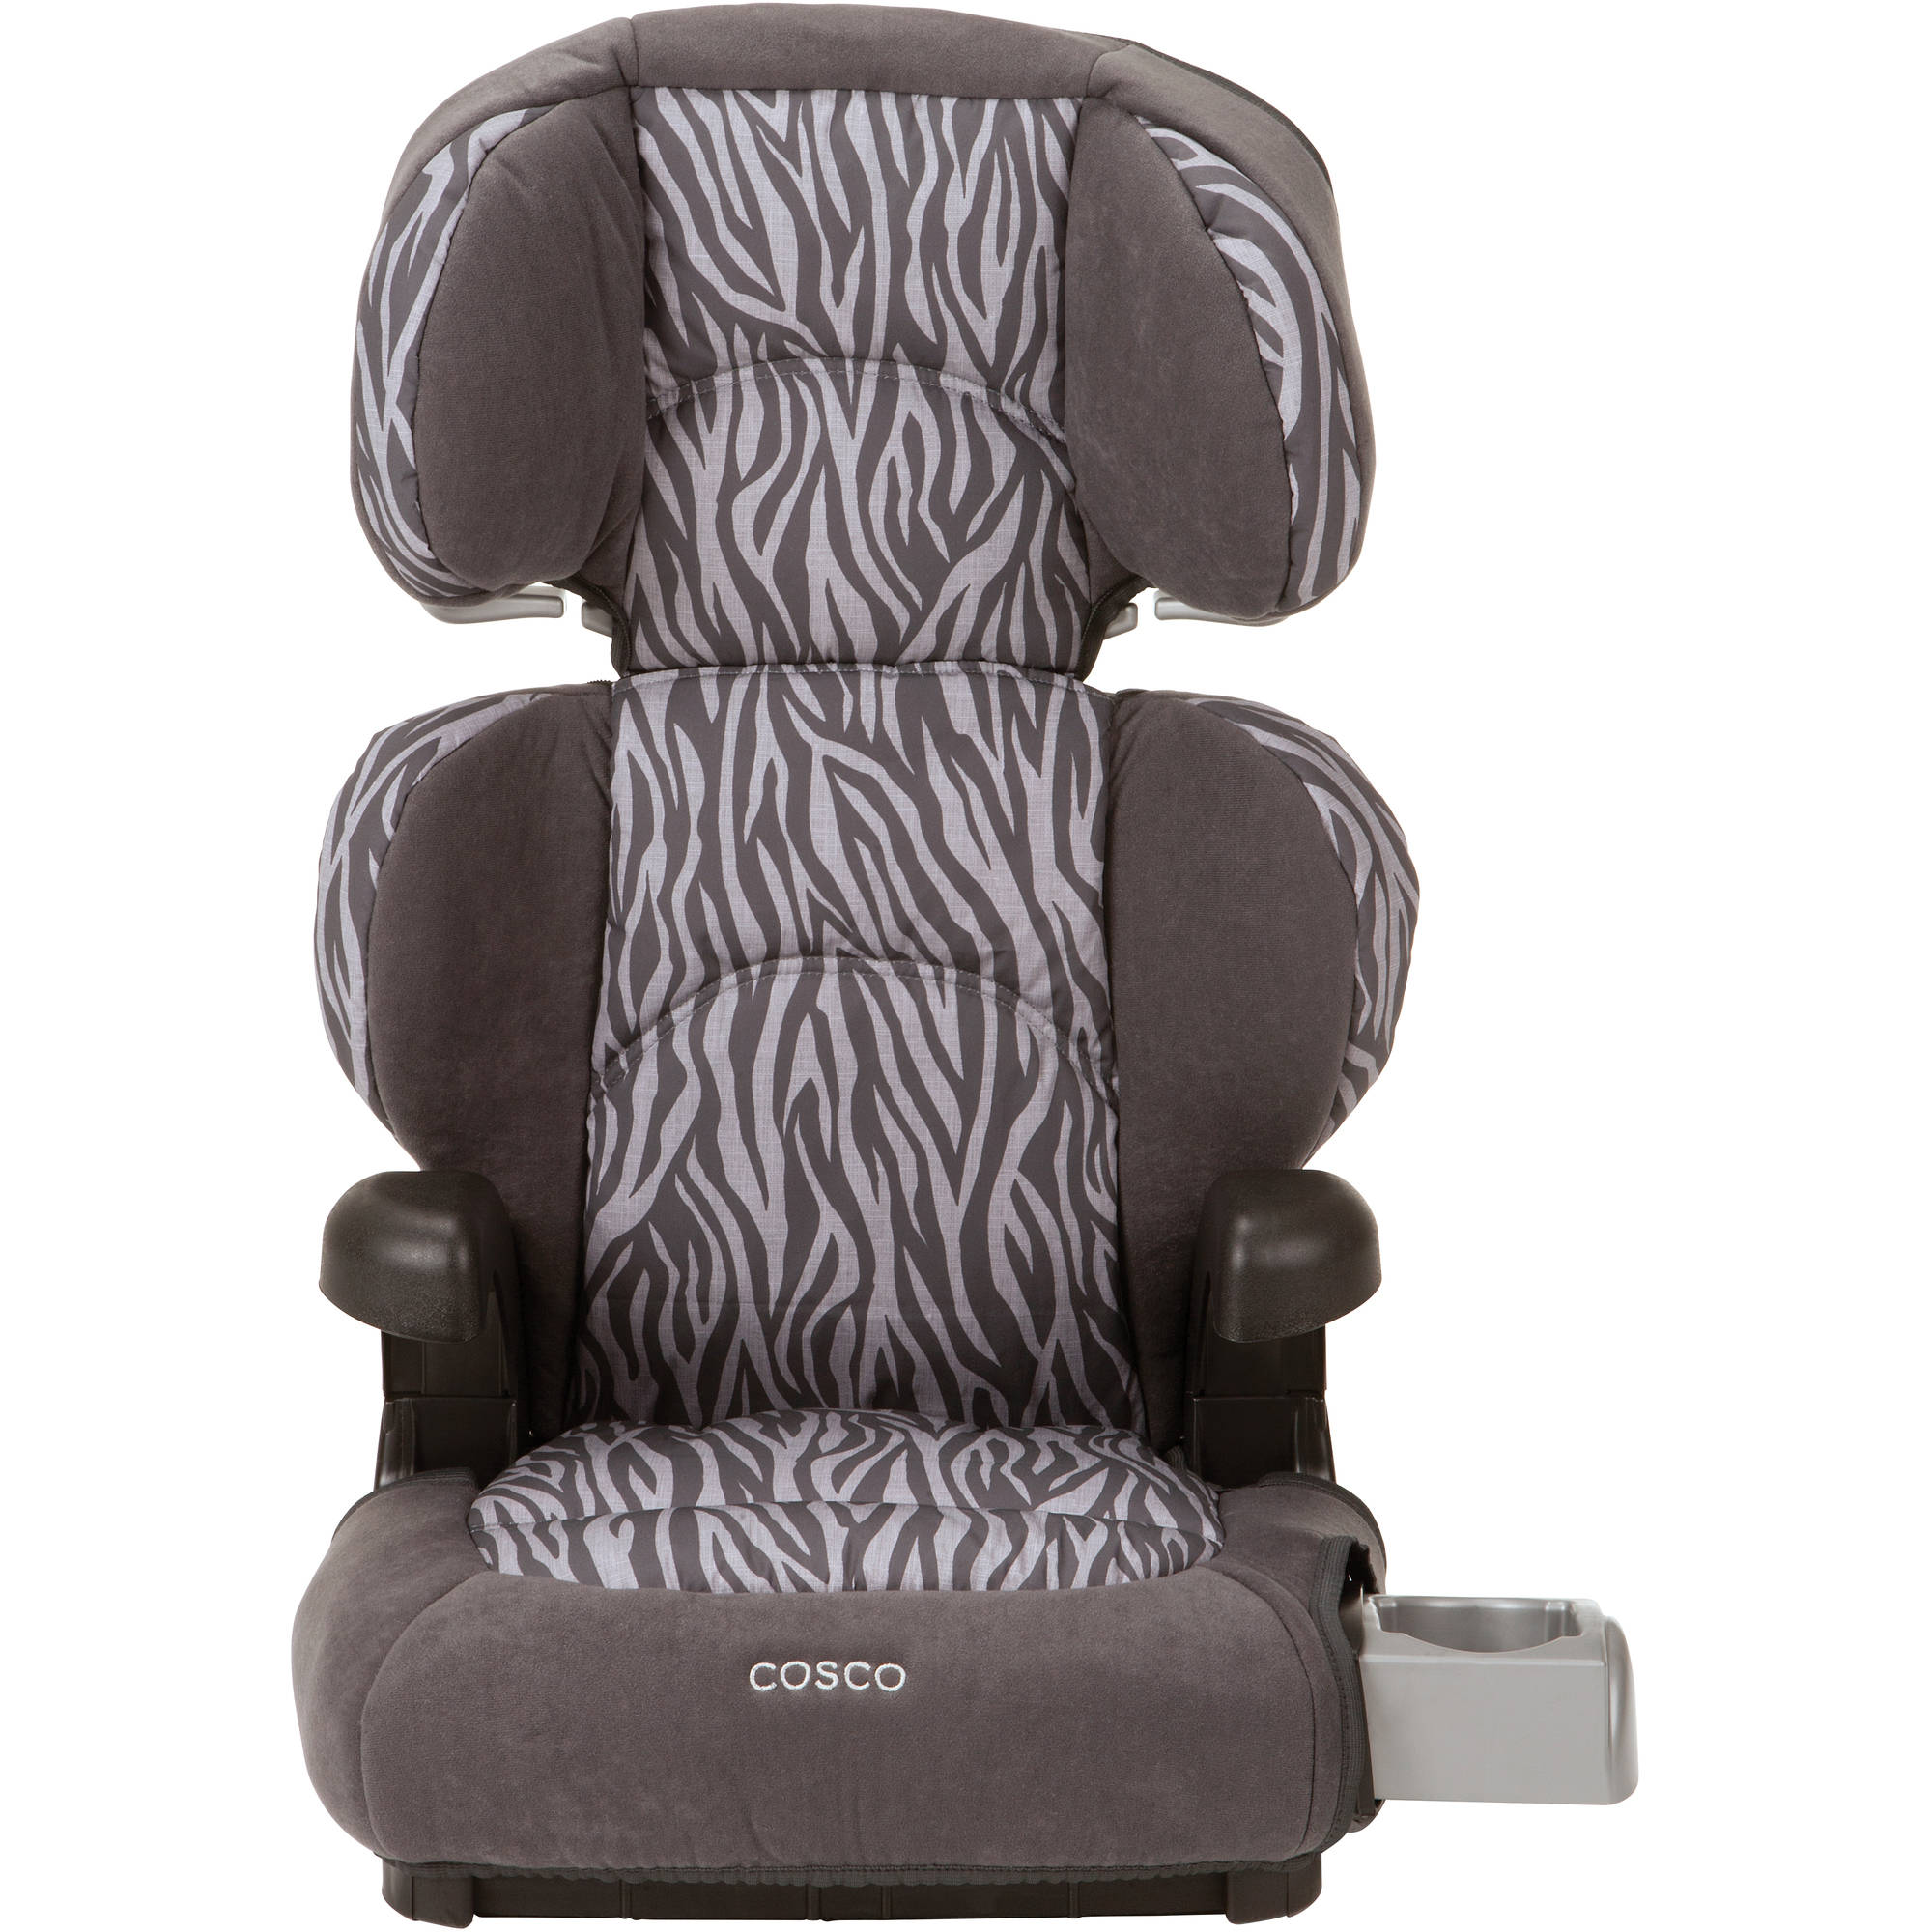 Medication discount coupons bvgg - Cosco Pronto Booster Car Seat Choose Your Pattern